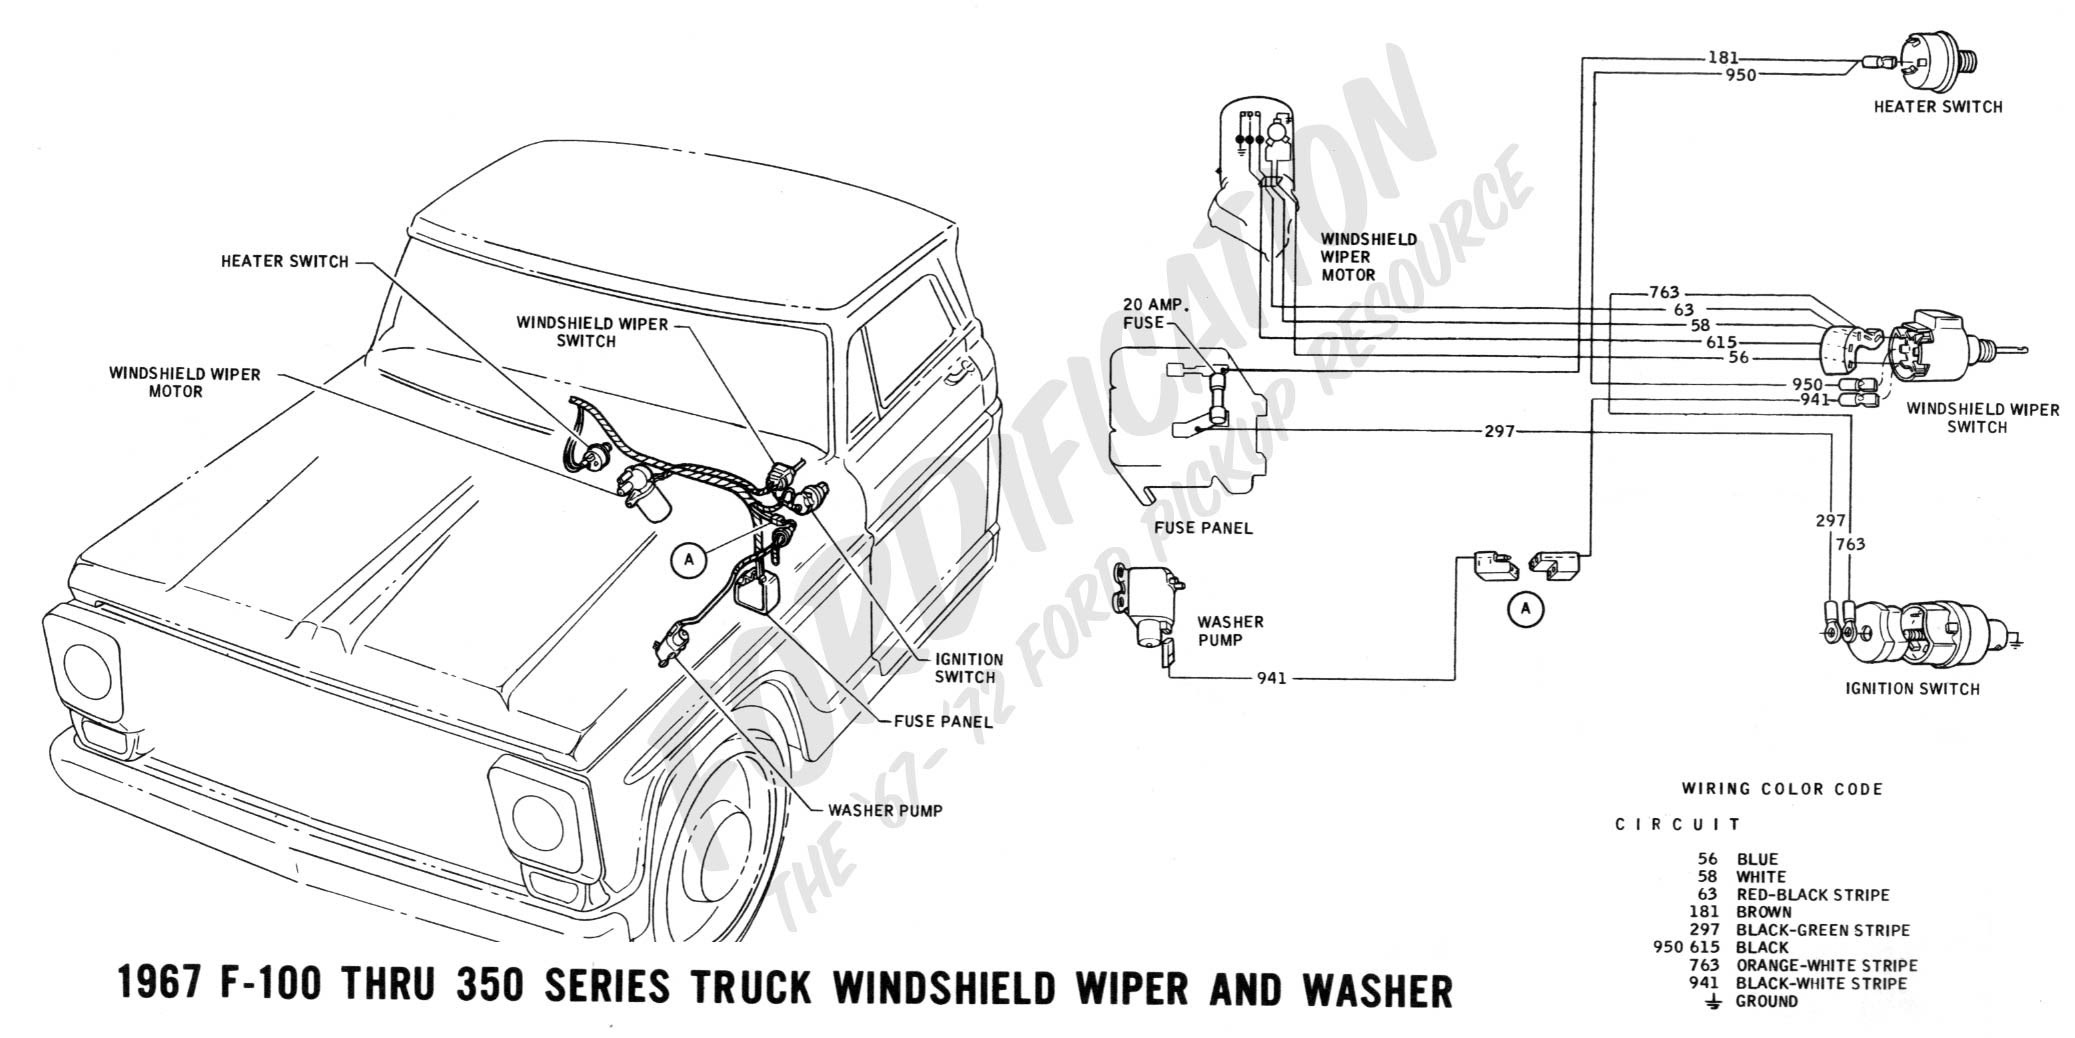 Ford Windshield Wiper Motor Wiring Diagram